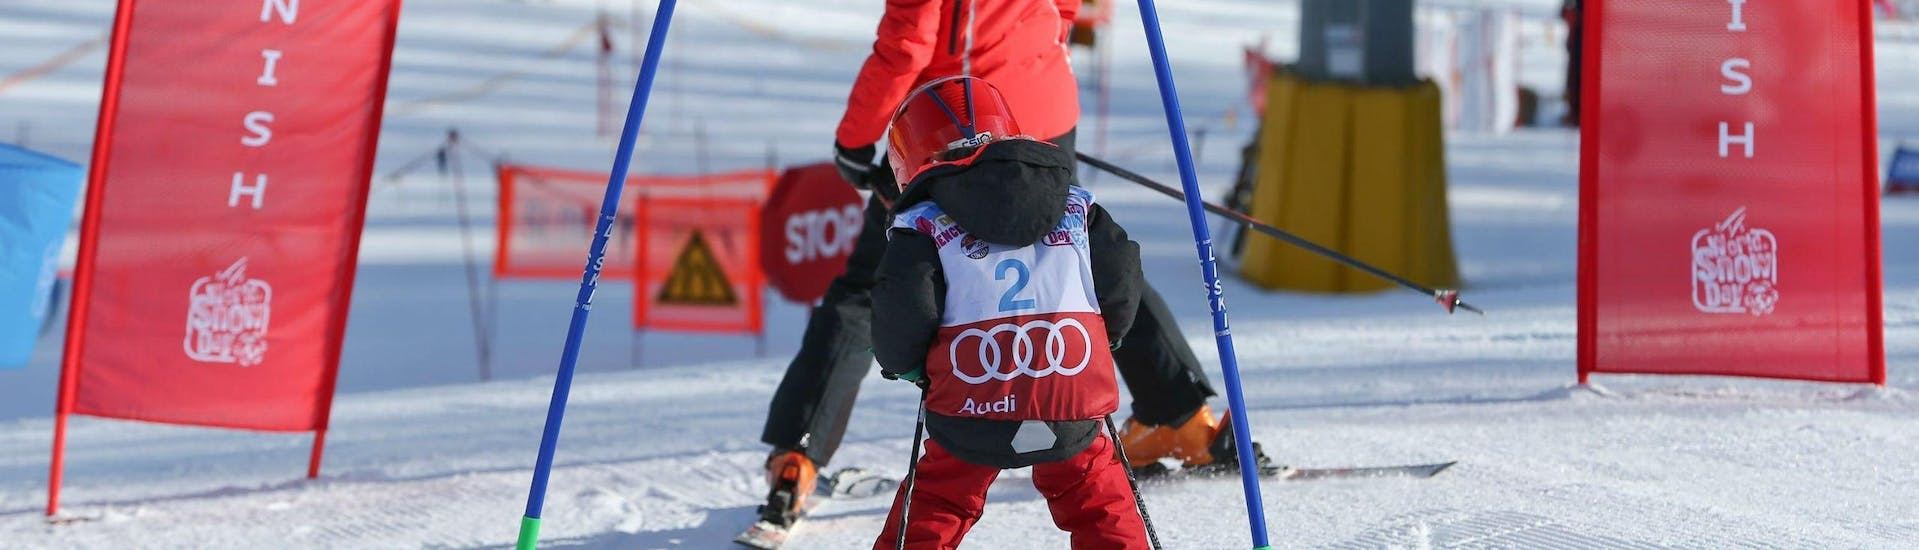 """A young child is practicing its skiing technique on a race course in Cortina d'Ampezzo during one of its Kids Ski Lessons """"Smart"""" (4-12 years) - With Experience organised by the ski school Scuola Sci Cortina."""